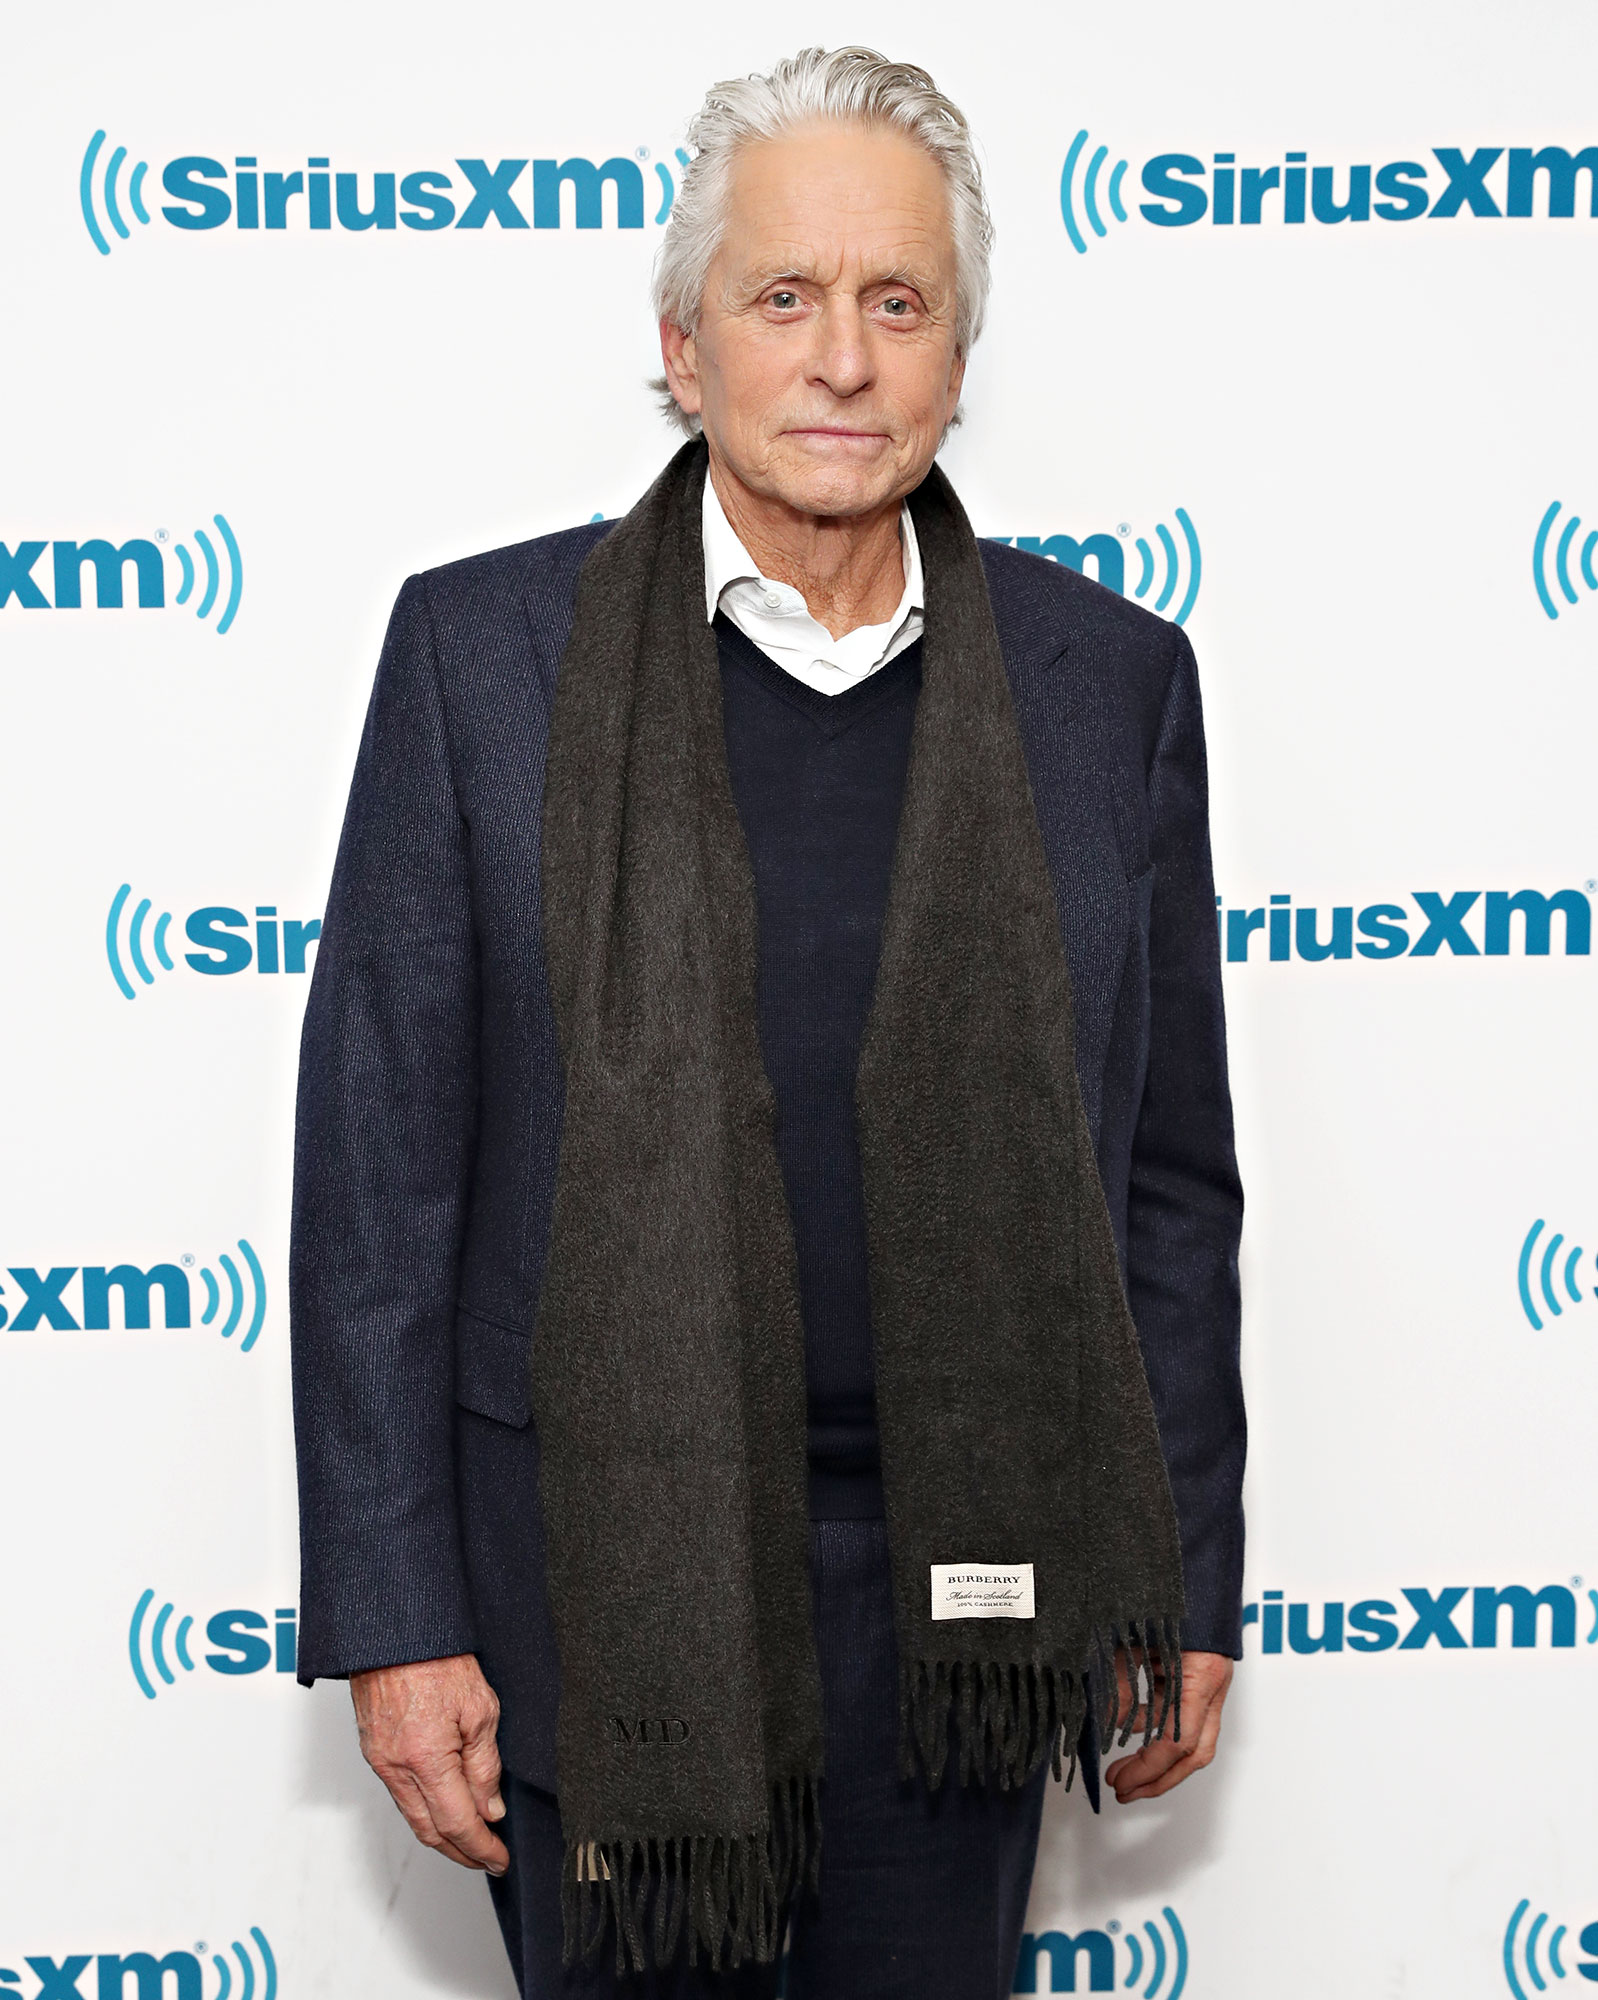 Michael Douglas Says He Was 'Extremely Disappointed' in Reports of Sexual Harassment Against Him